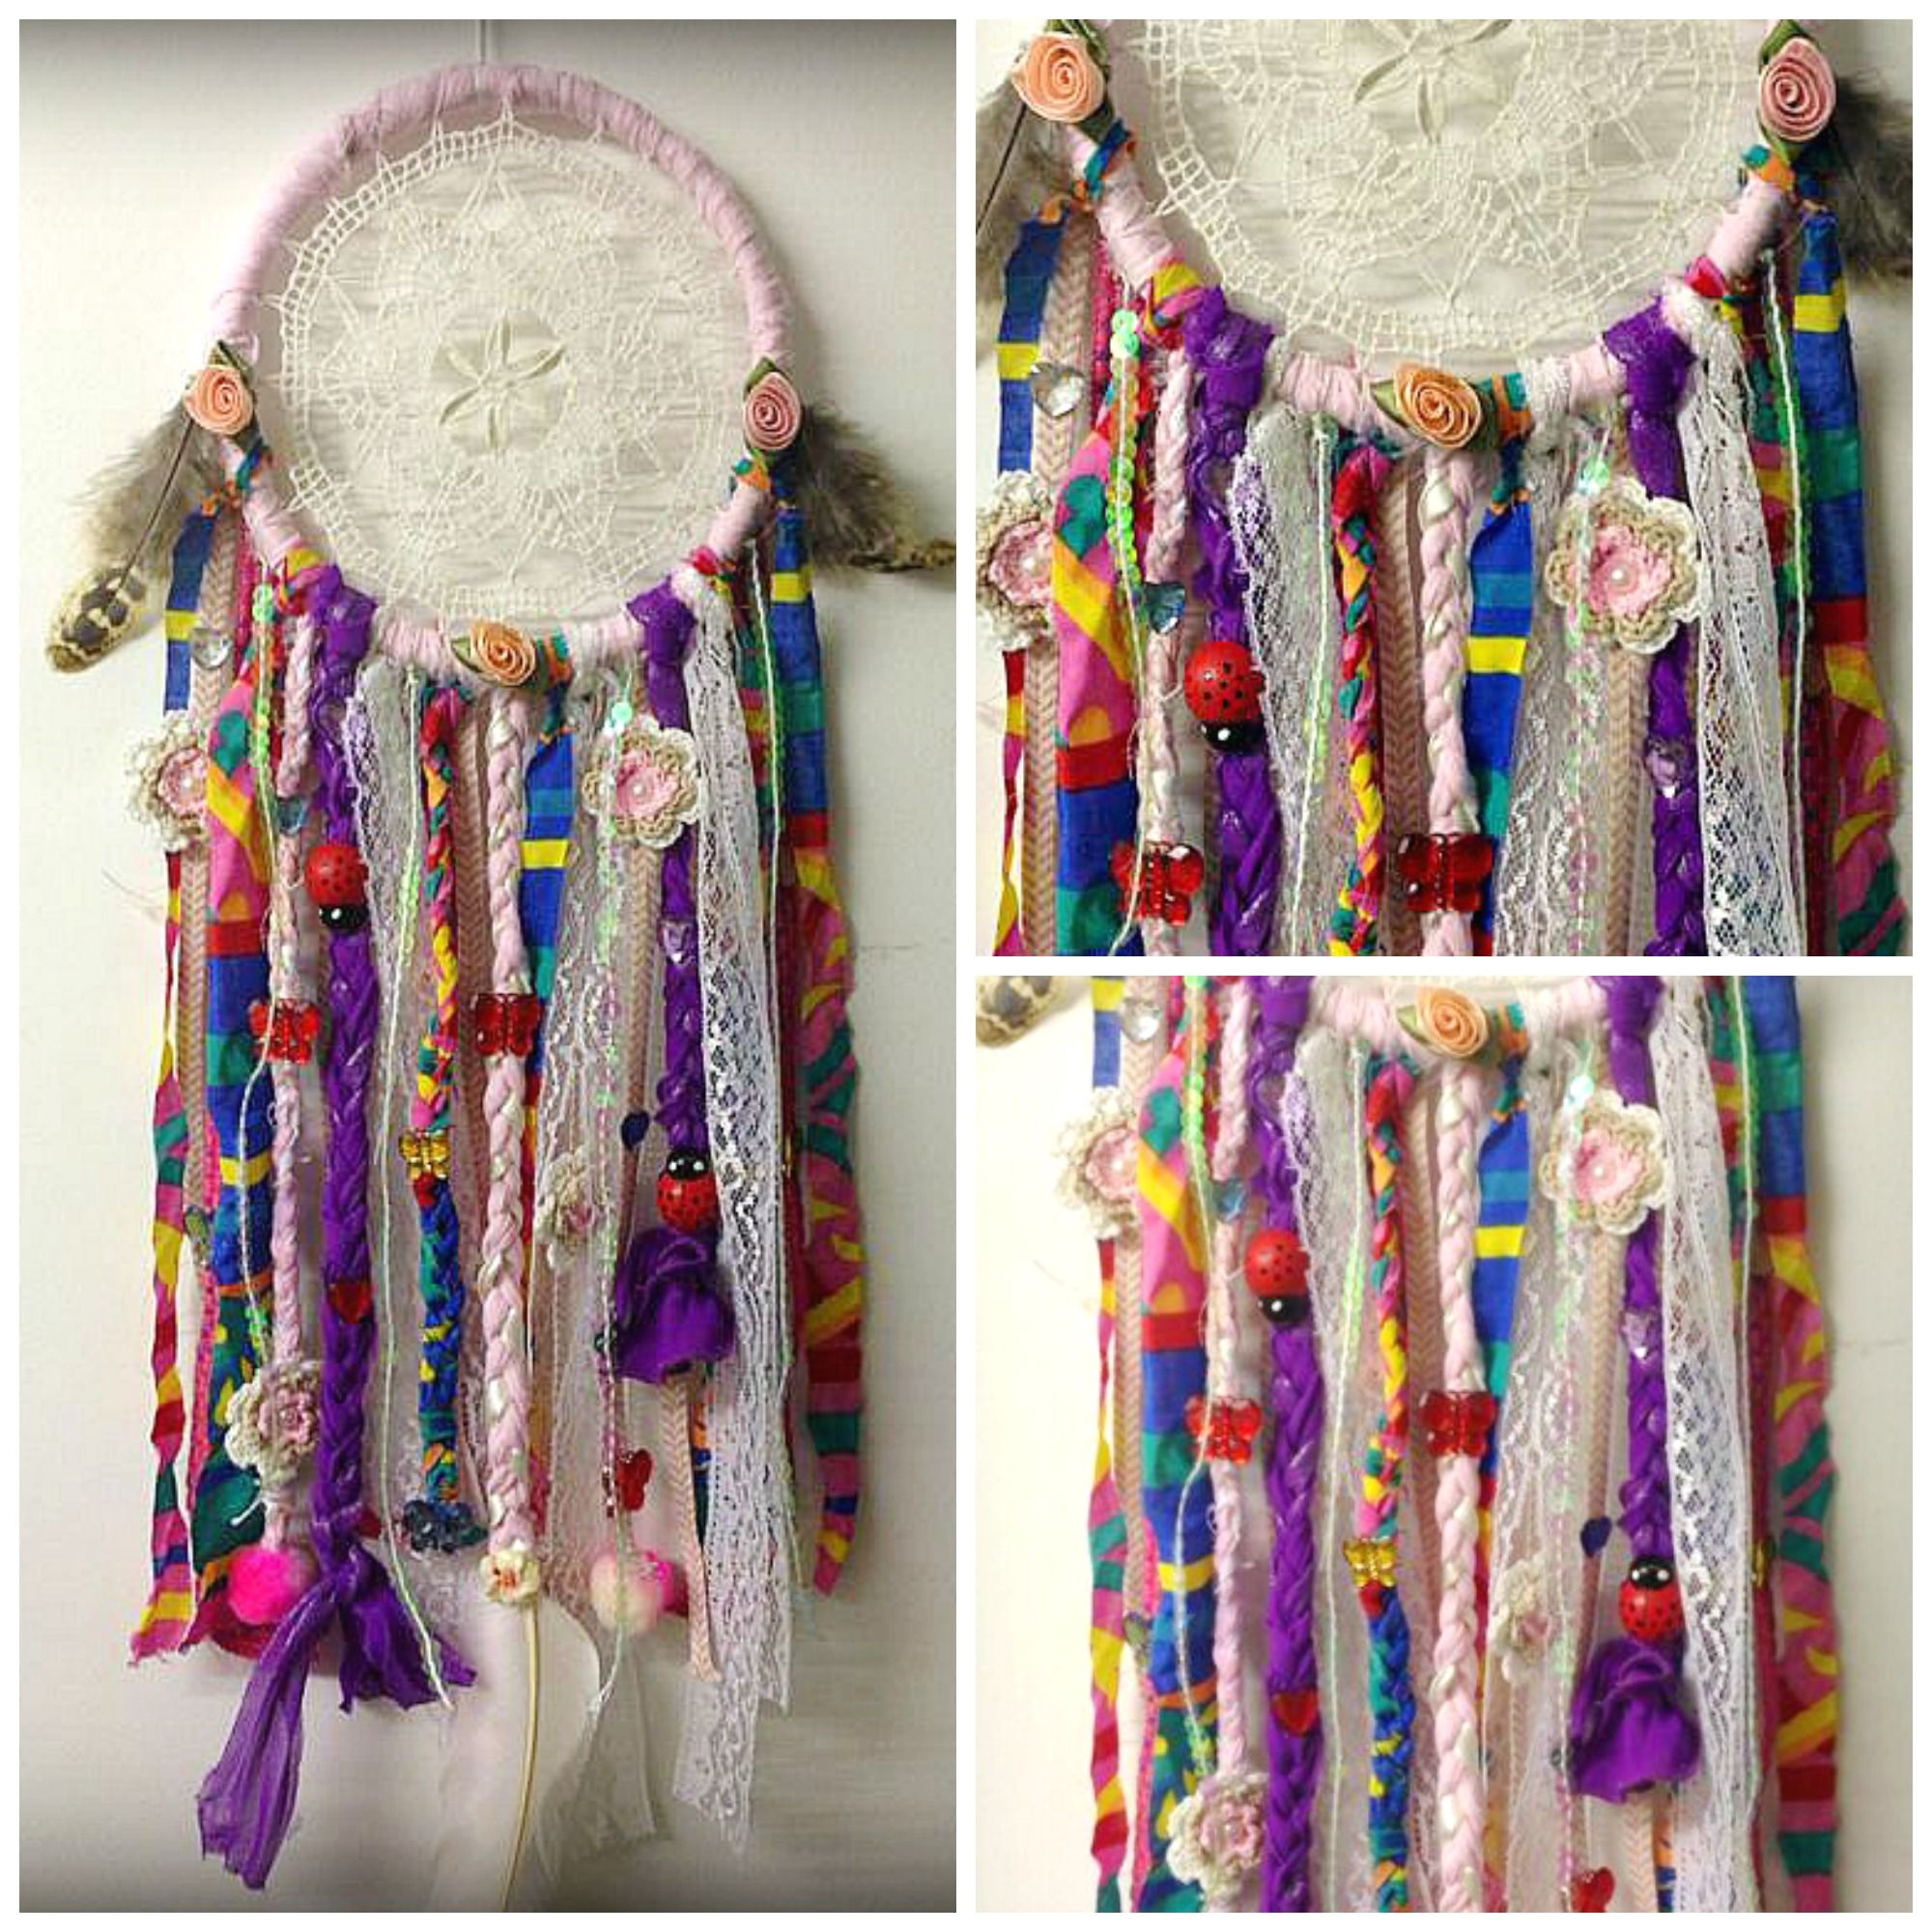 www.etsy.com/shop/mistysoul #dreamcatcher #dream #love #craft #etsy #nativeamerican #spiritual #healing #shaman #healer #health #wellbeing #yoga #meditation #spirit #nightmare